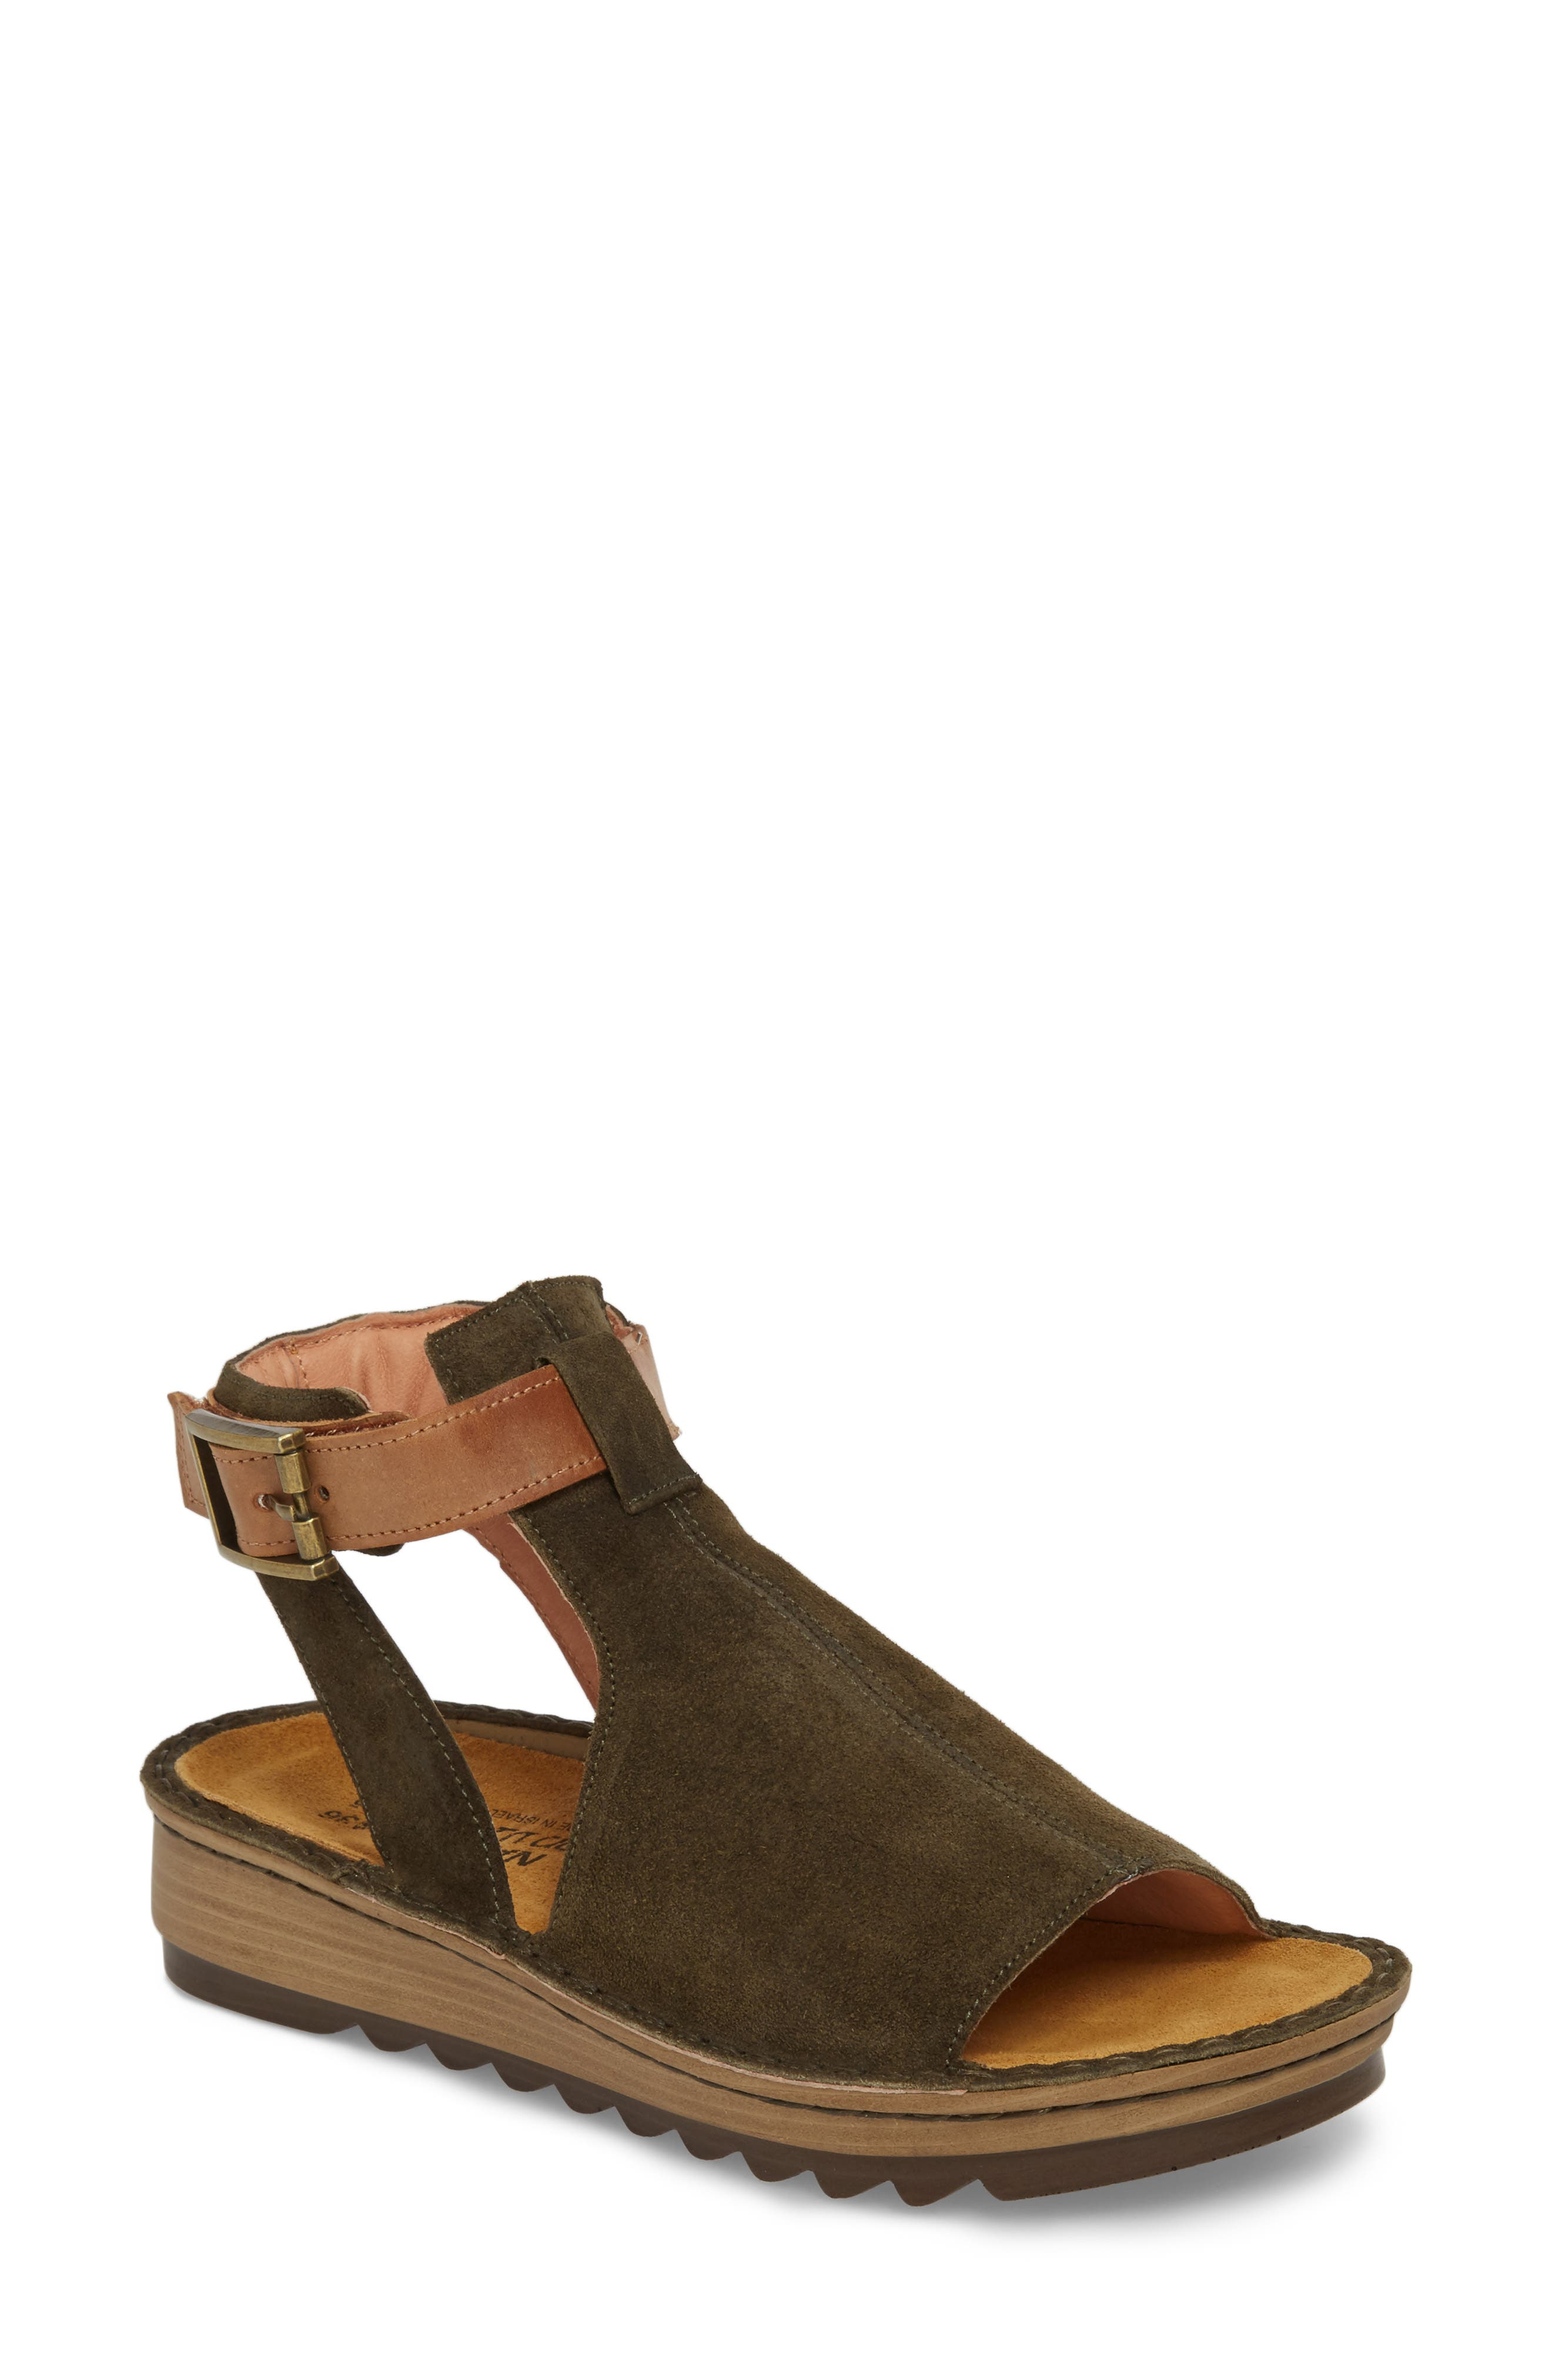 Verbena Sandal,                             Main thumbnail 1, color,                             BRUSHED OILY OLIVE SUEDE